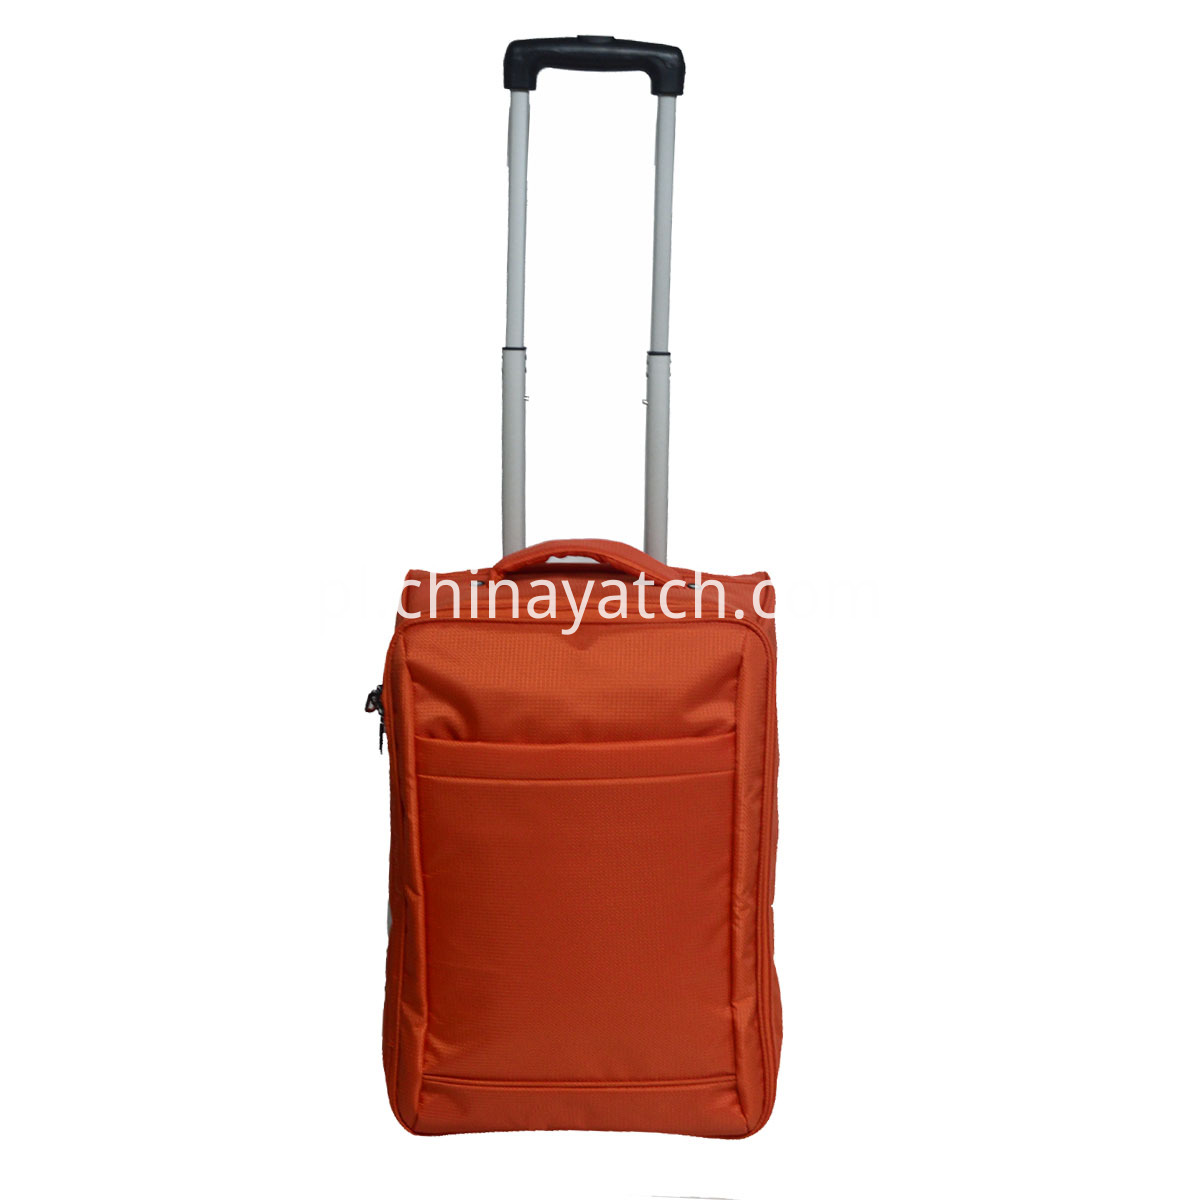 Carry on Foldable Trolley Case